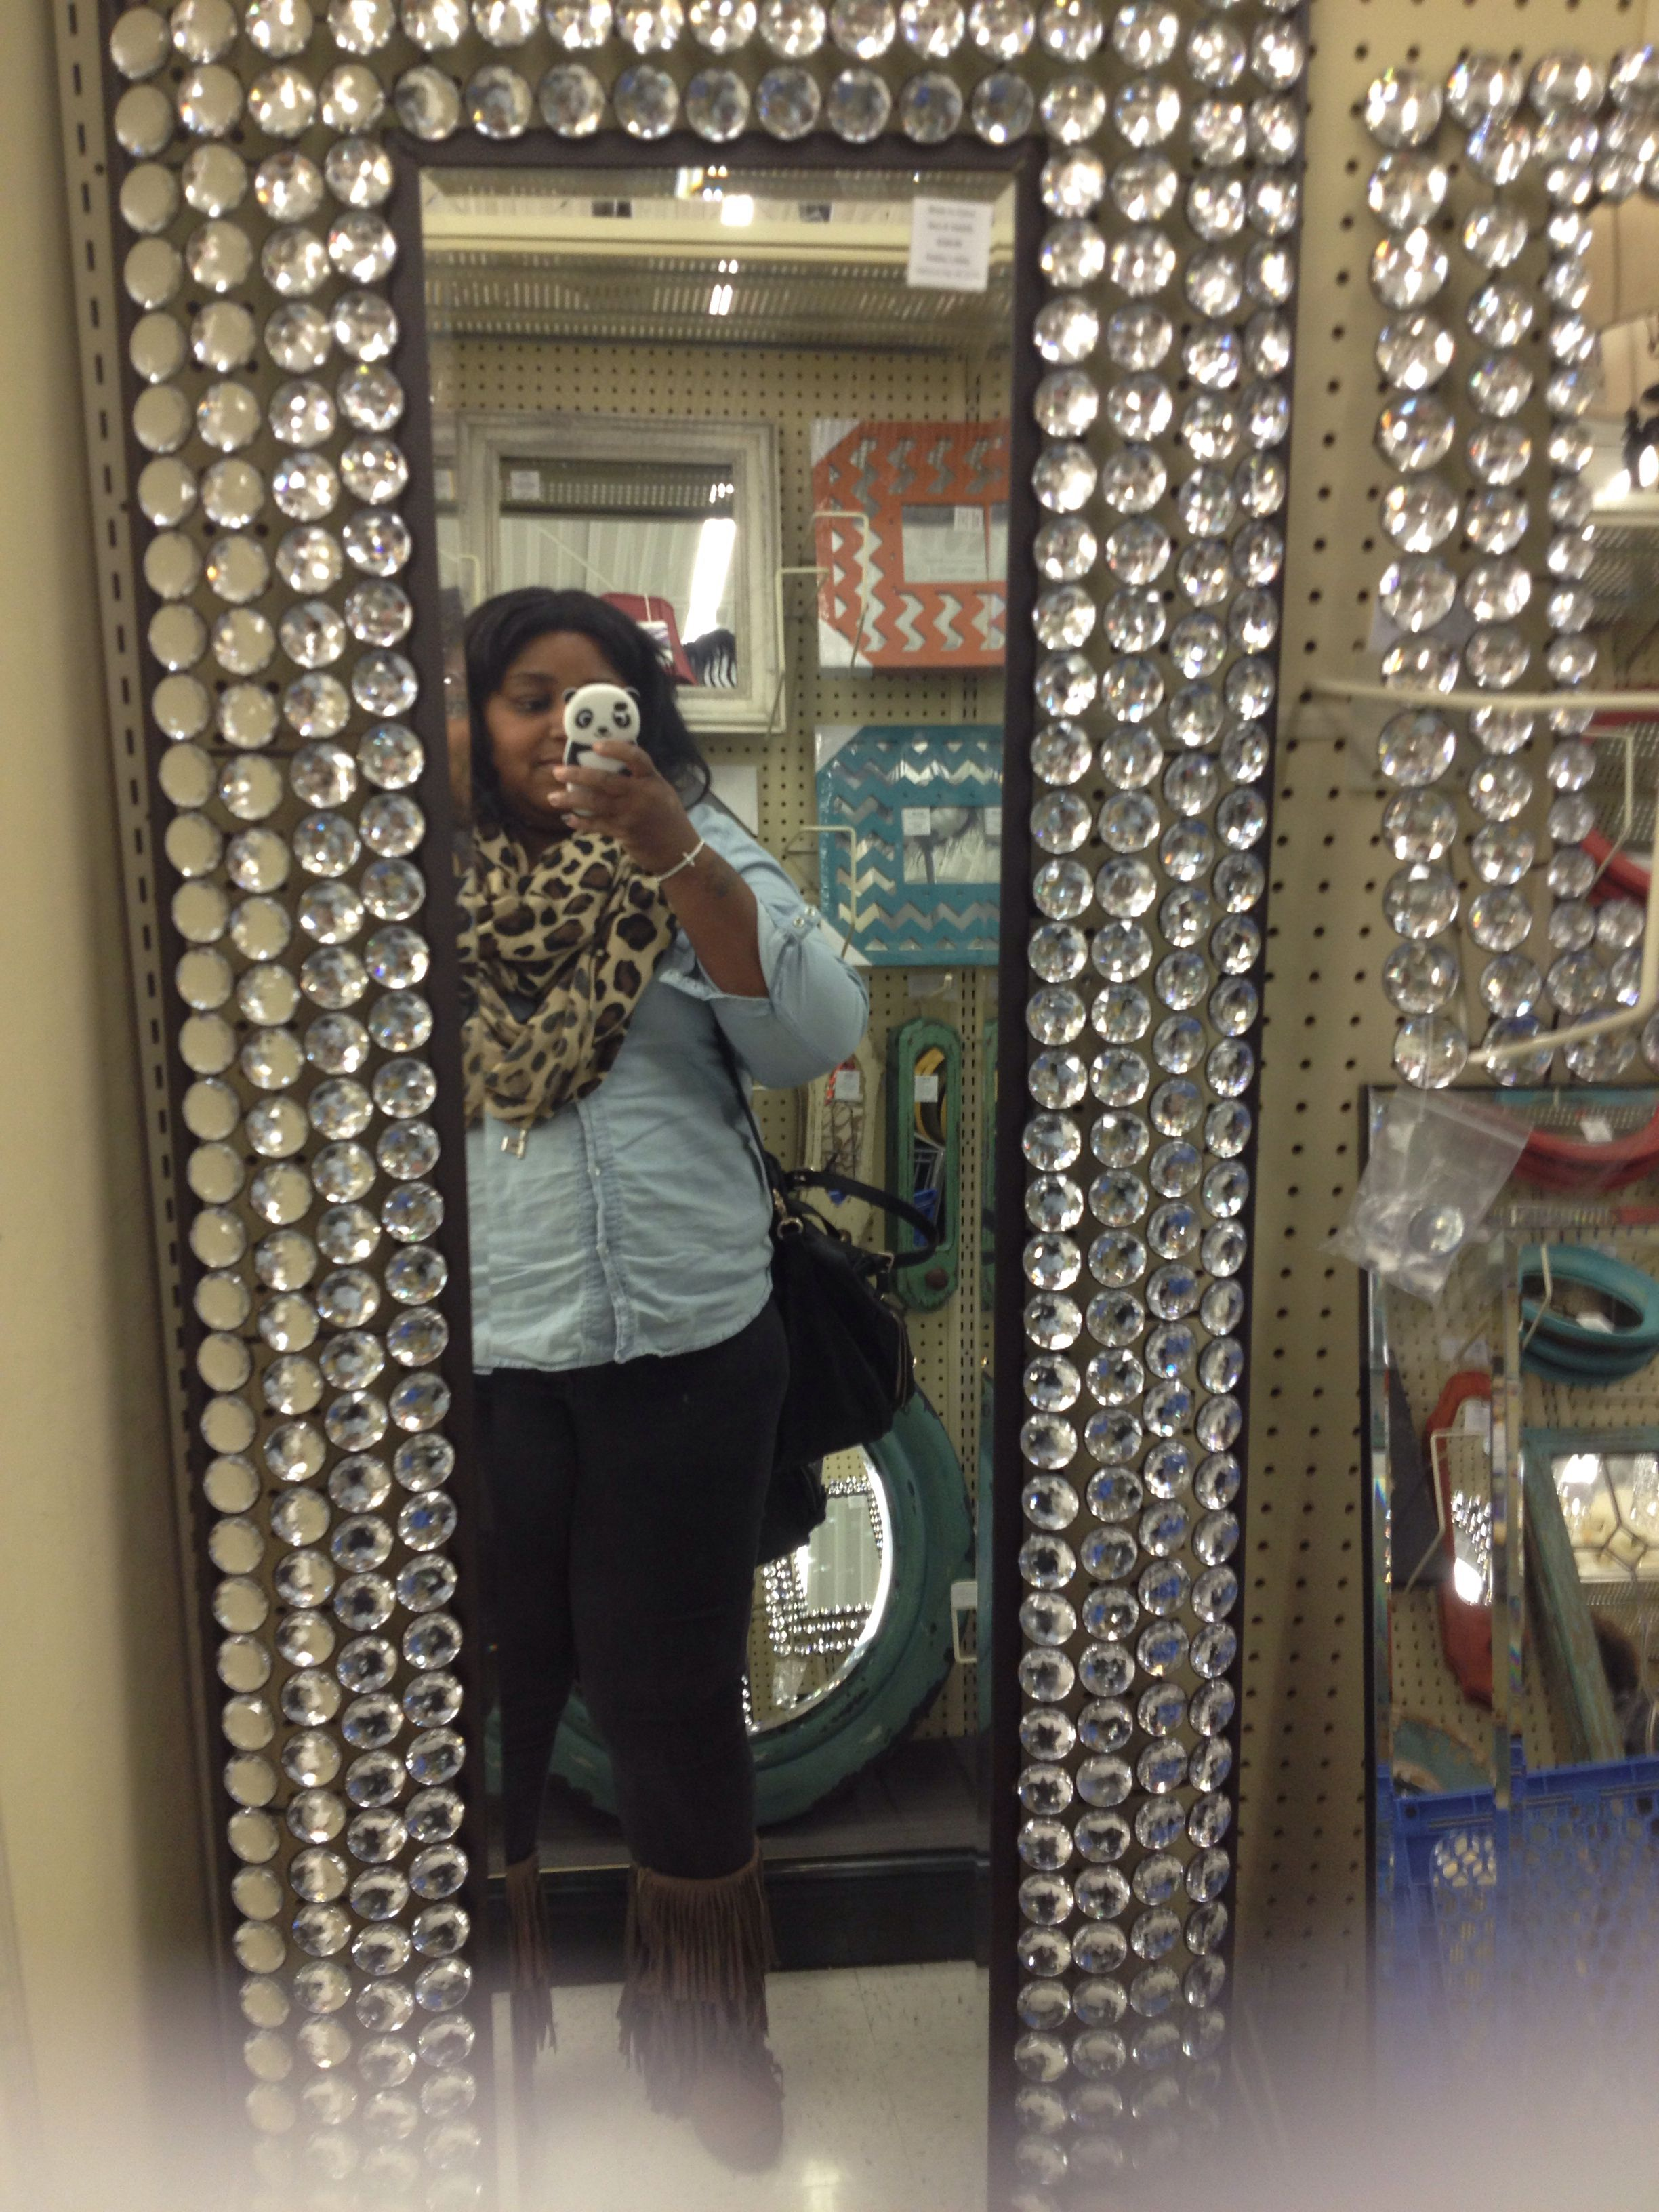 Hobby Lobby Mirror Home Decor Pinterest